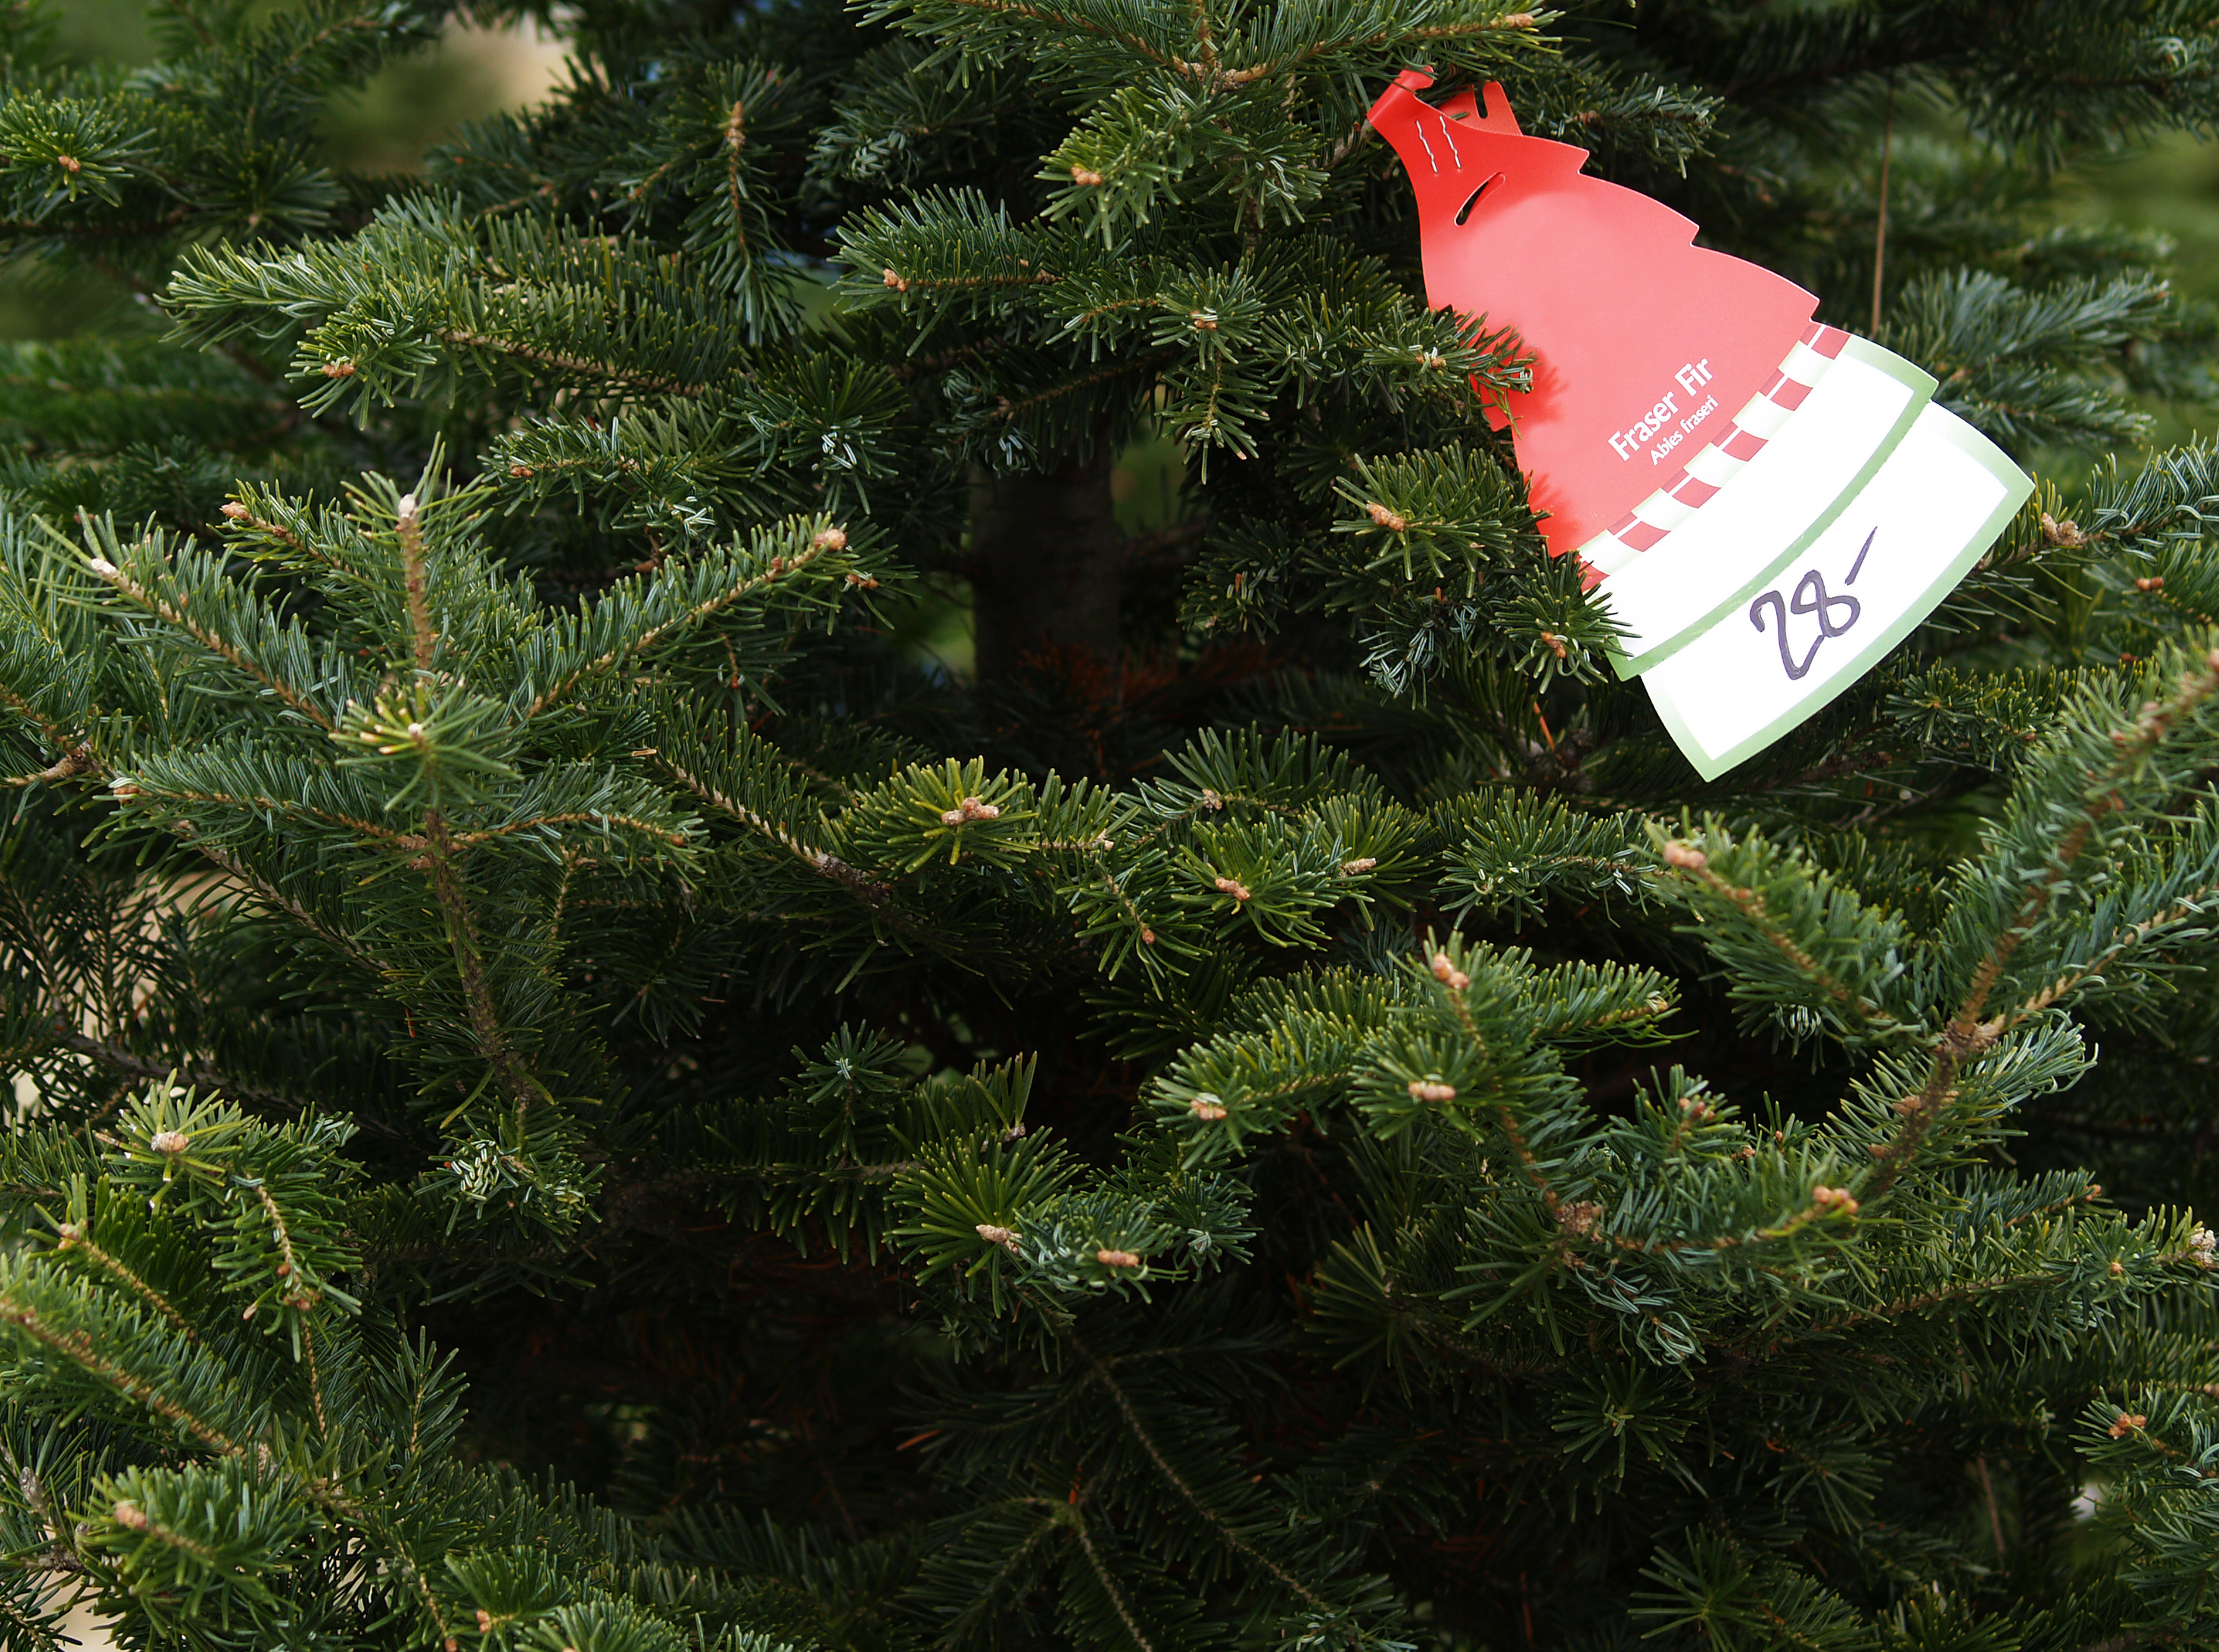 price-tag-fraser-fir-tree